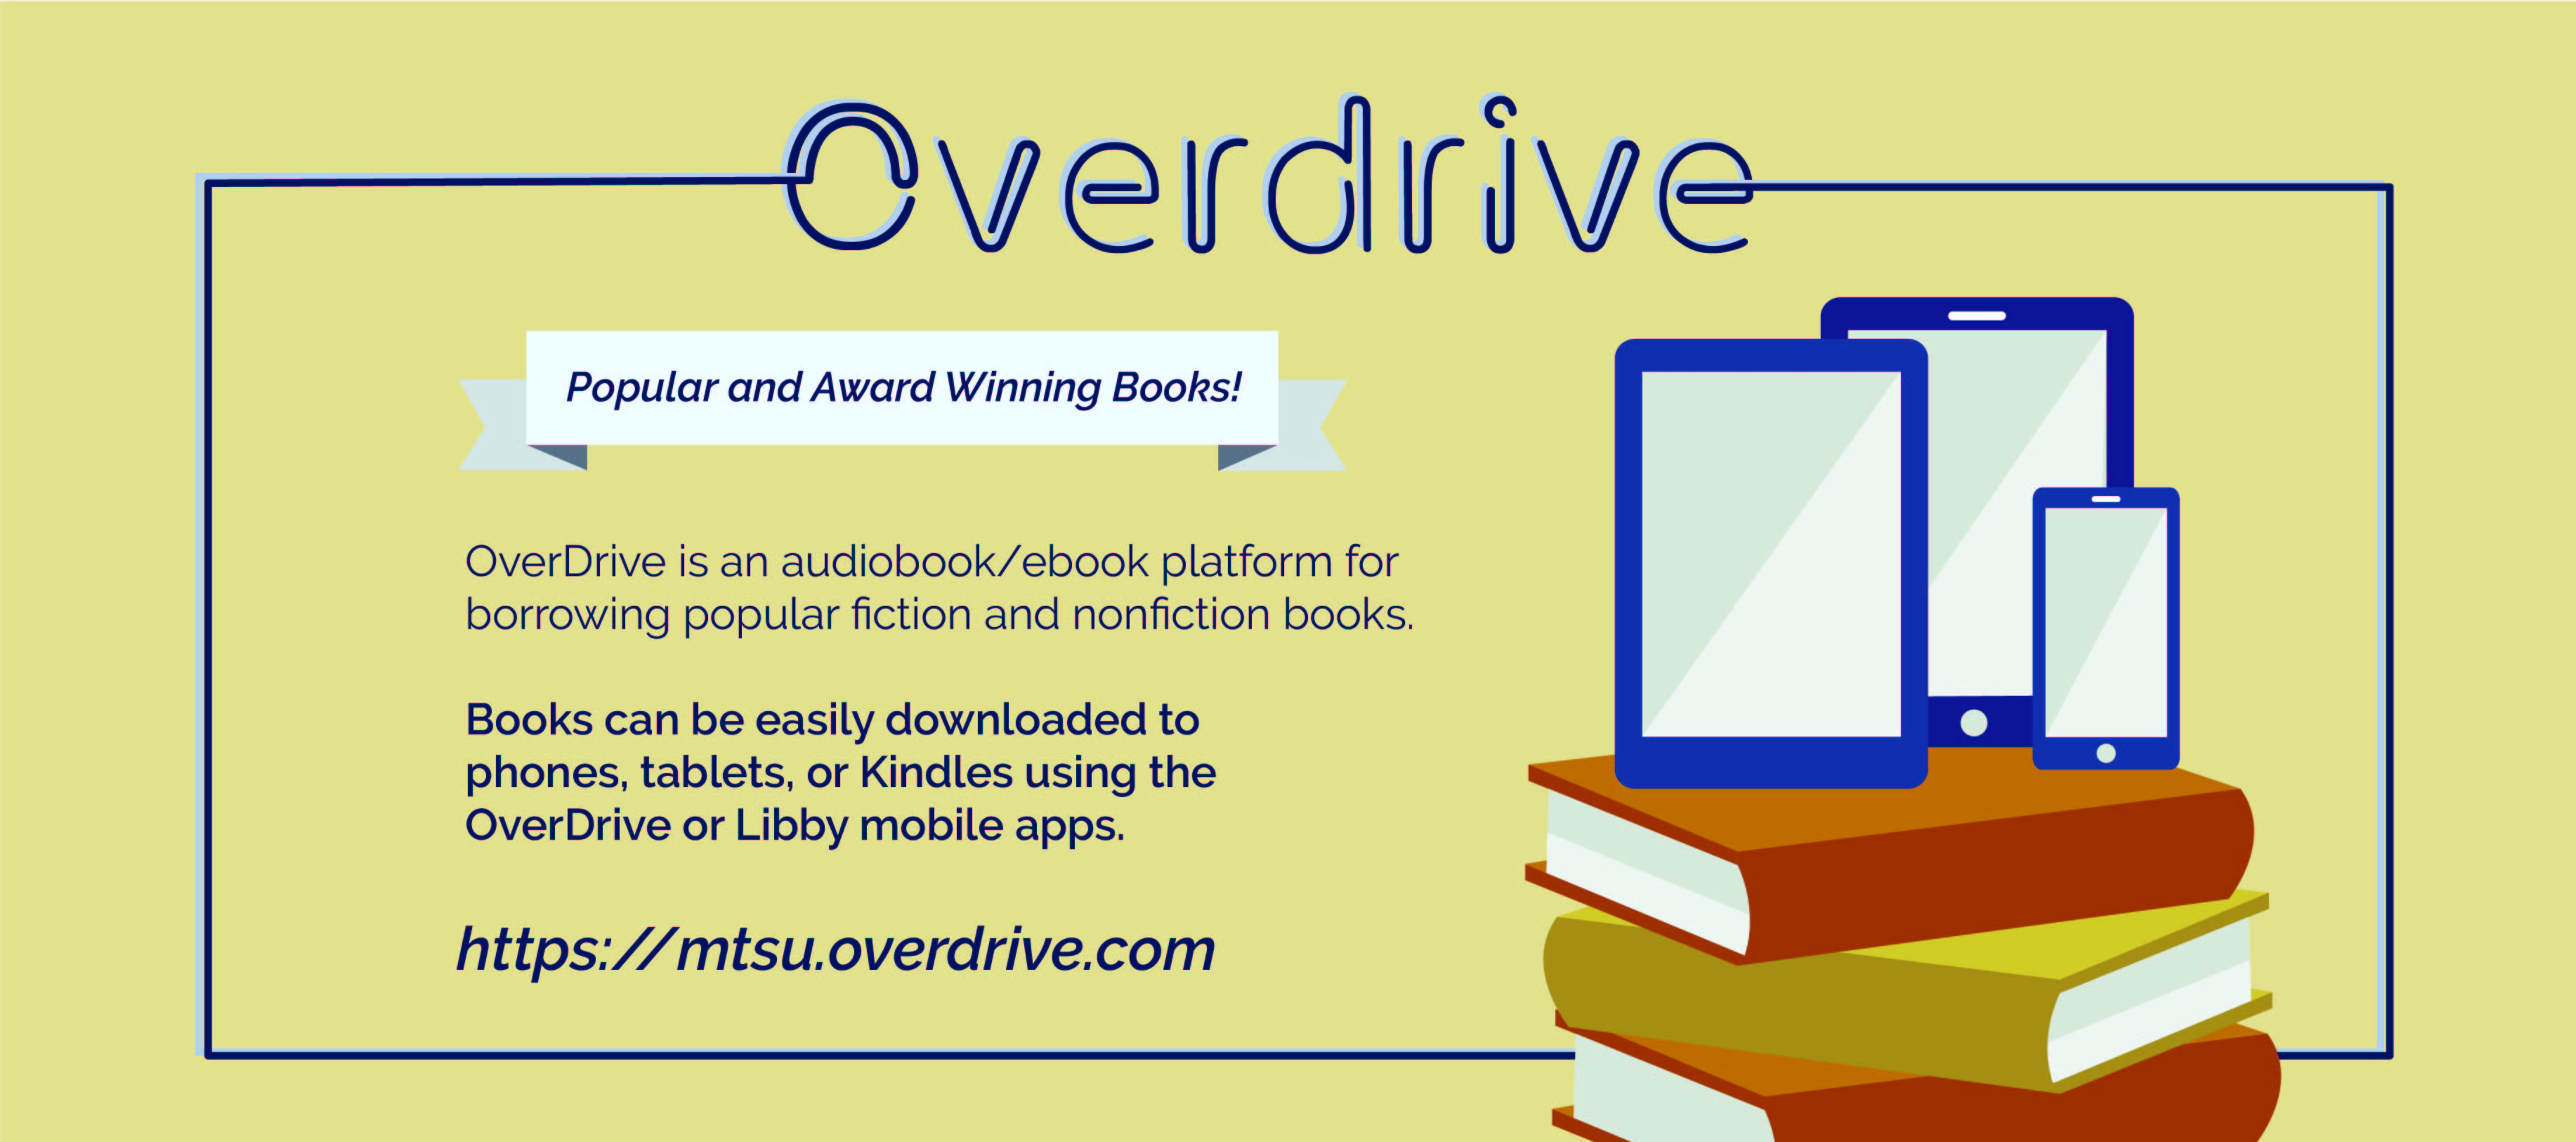 Overdrive Platform Link for audio and ebooks